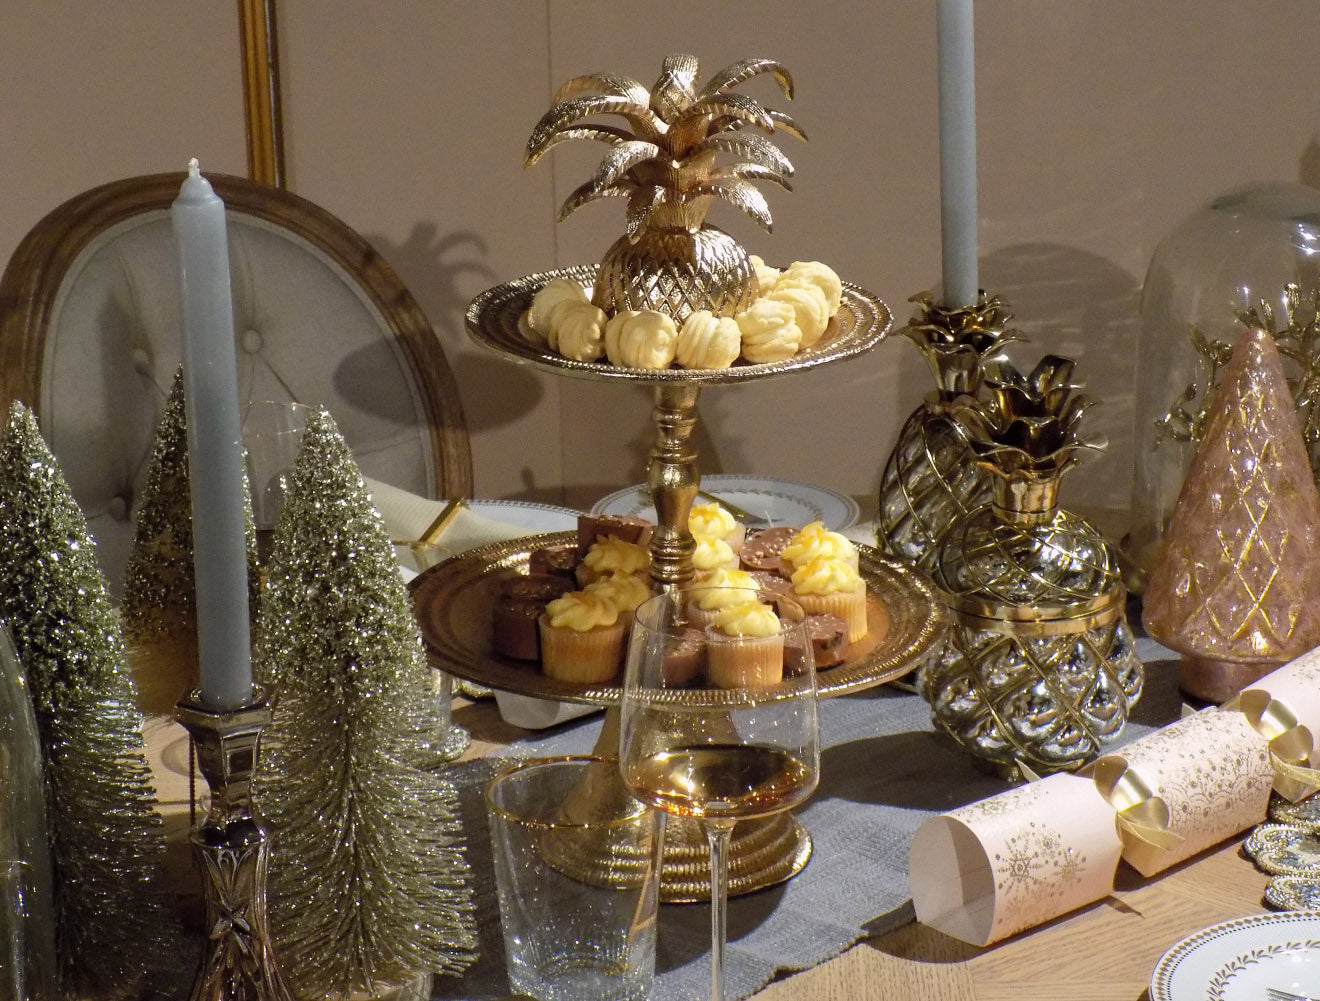 Marks and Spencer Christmas table decorations in gold